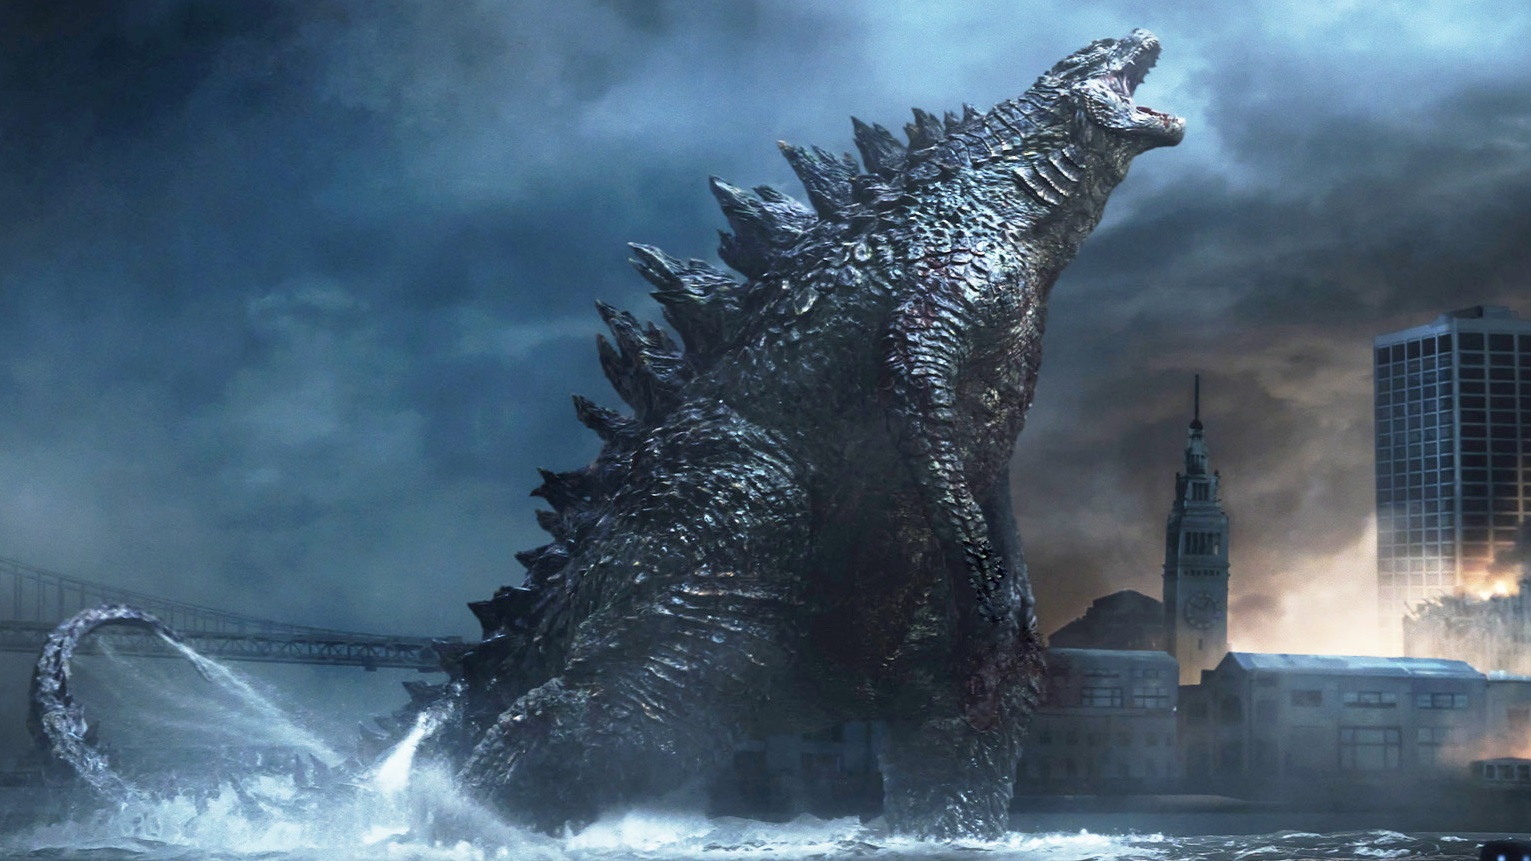 Did you hear the one about God being scared of Godzilla? Yeah, well, he should be!